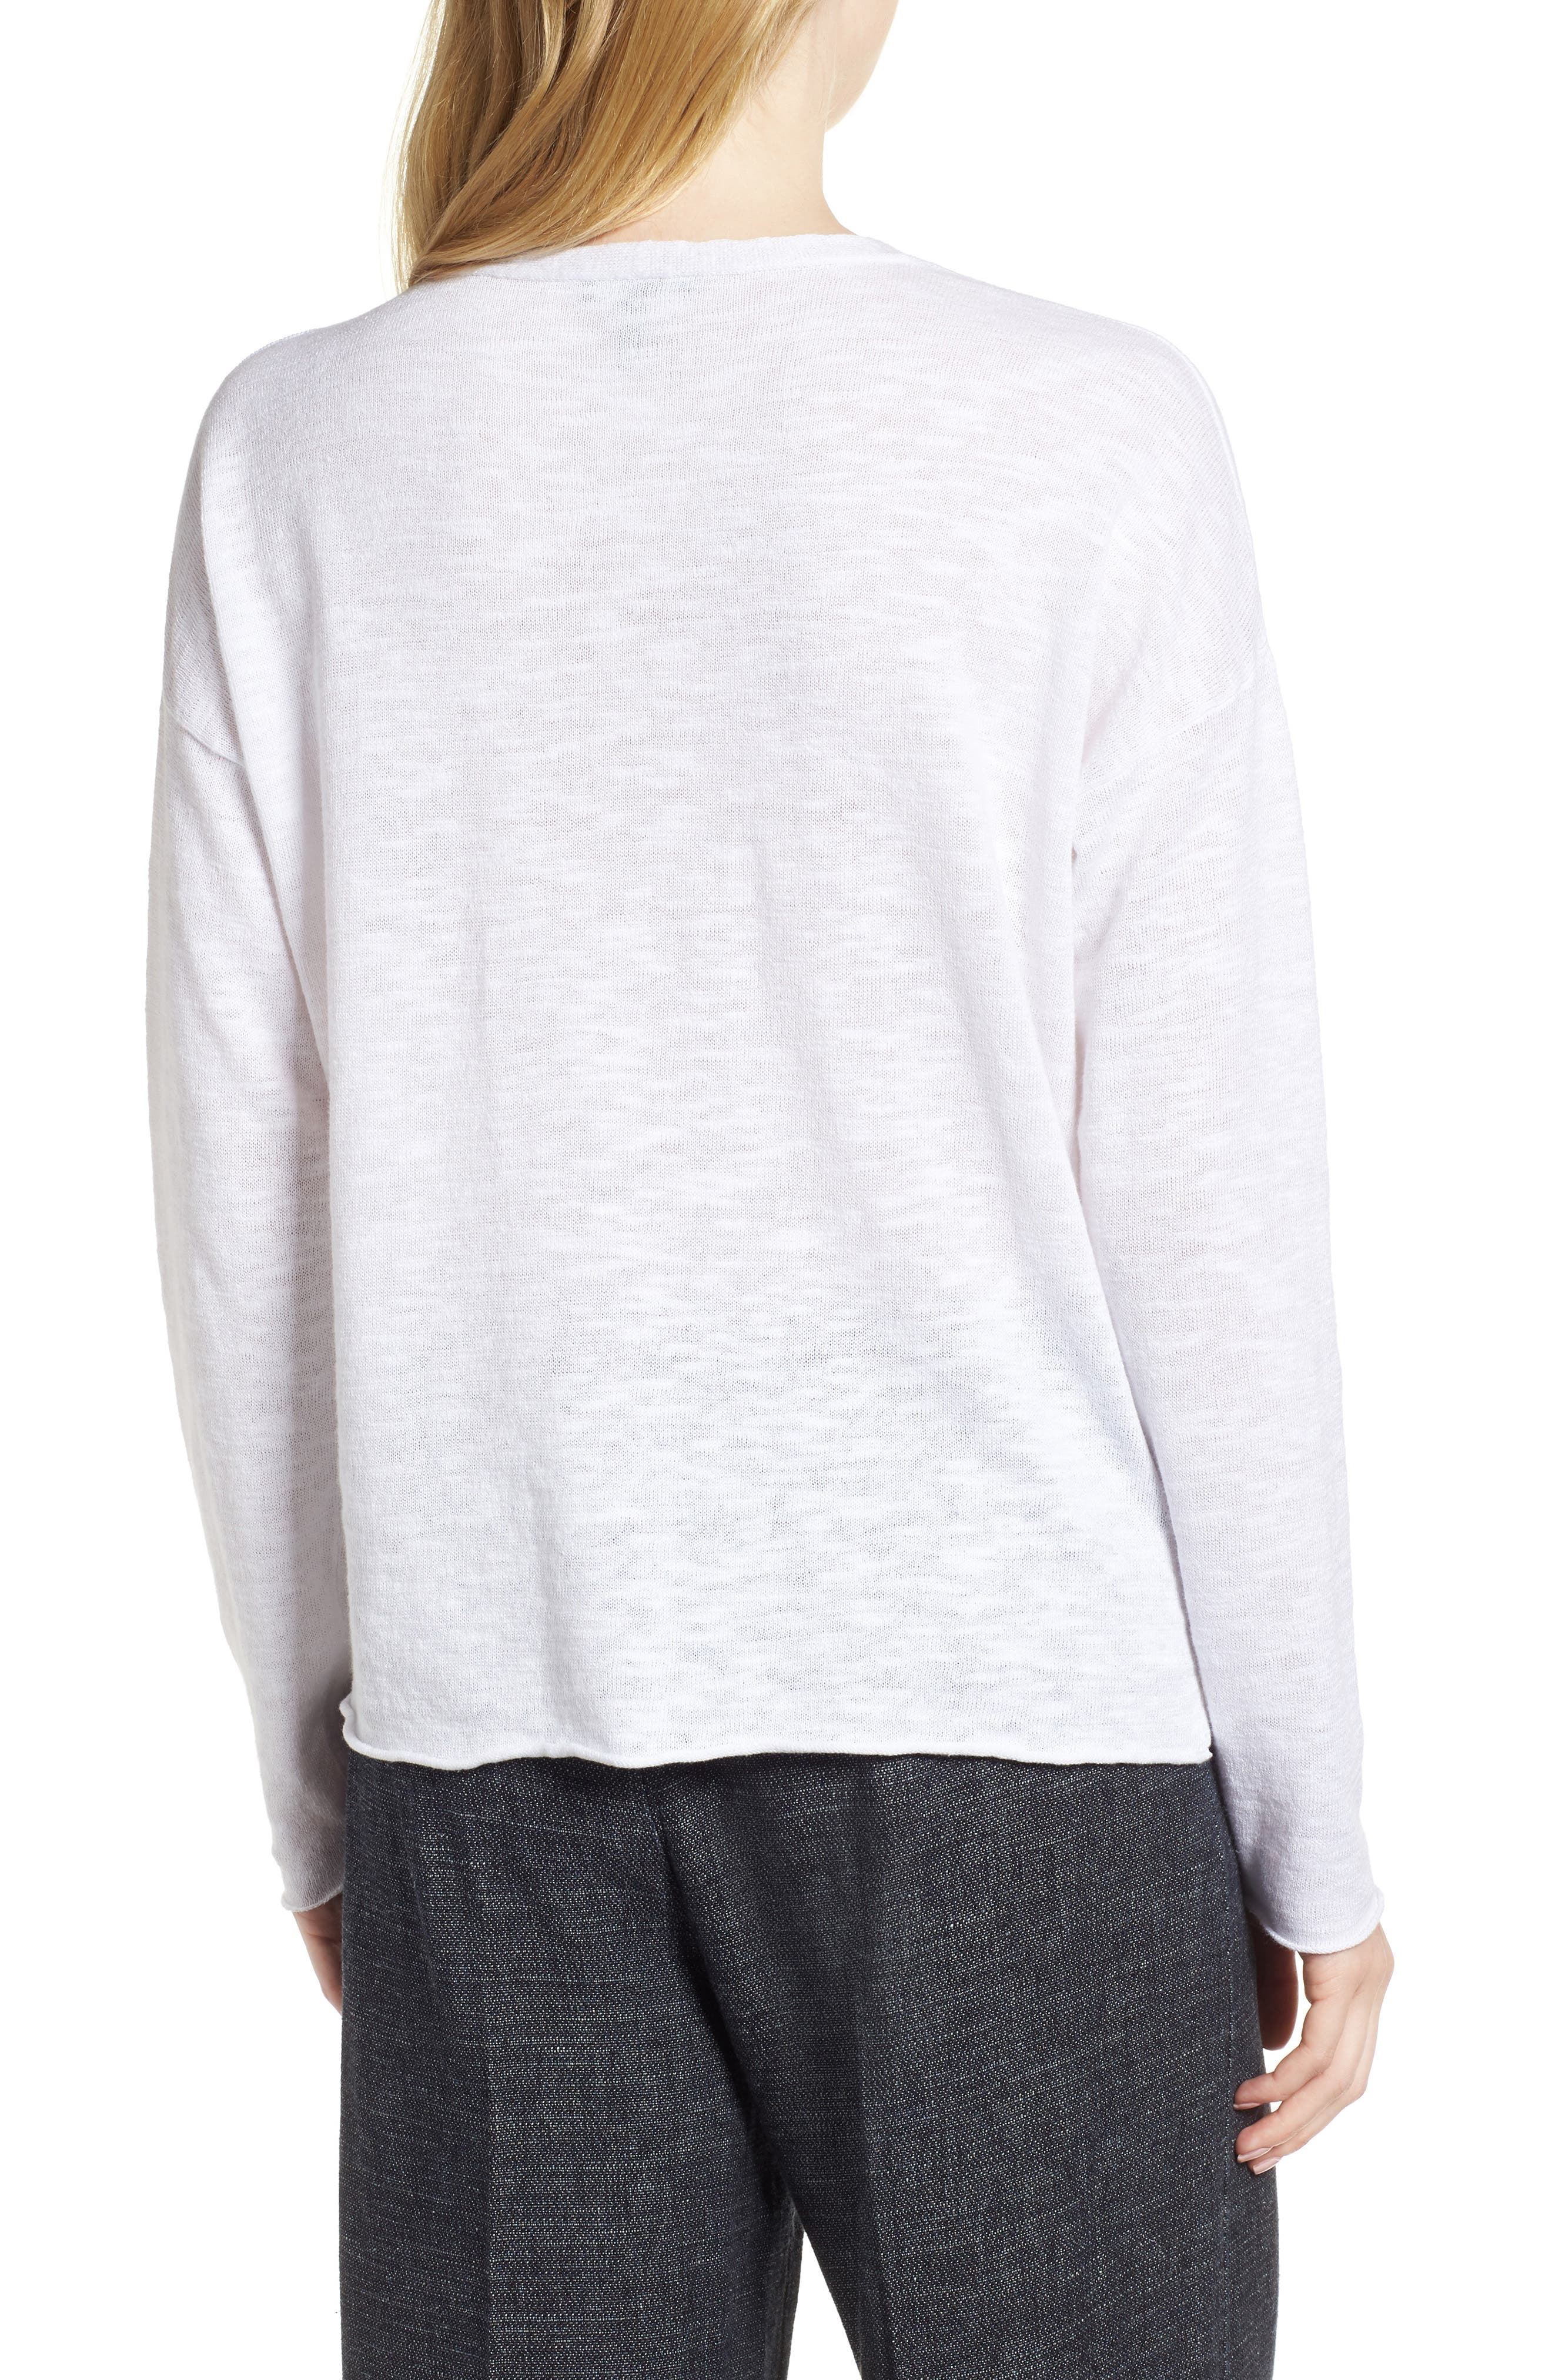 Boxy Organic Linen & Cotton Sweater,                             Alternate thumbnail 2, color,                             100